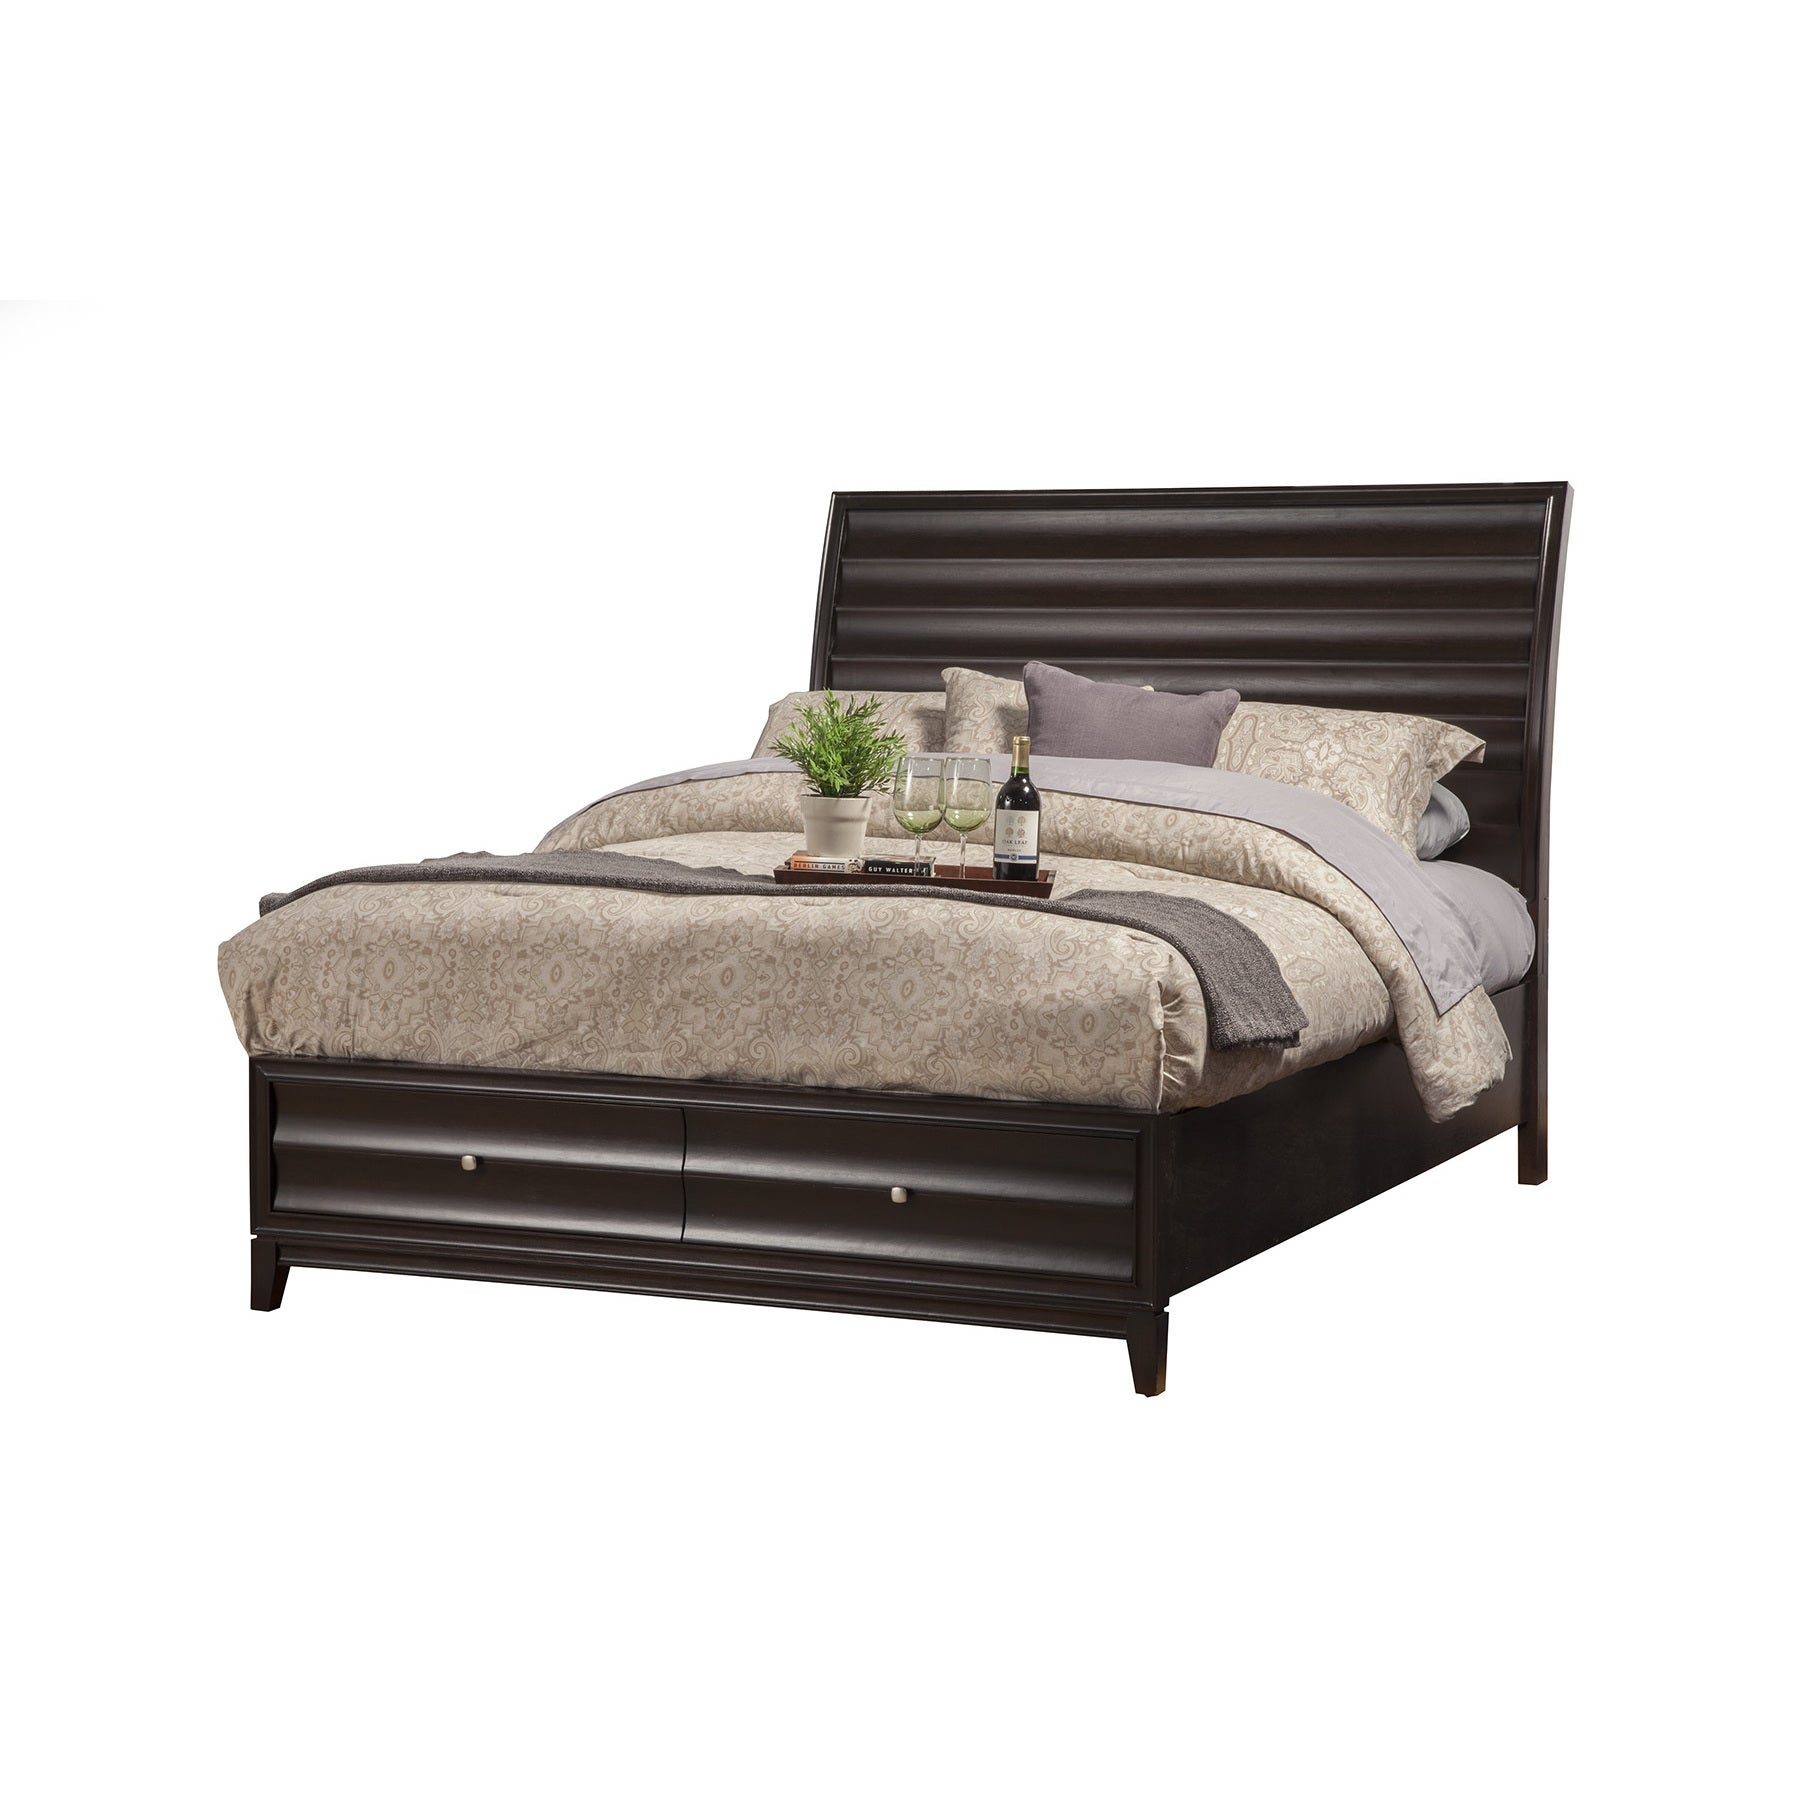 Alpine Furniture Alpine Legacy Storage Panel Bed (Queen),...